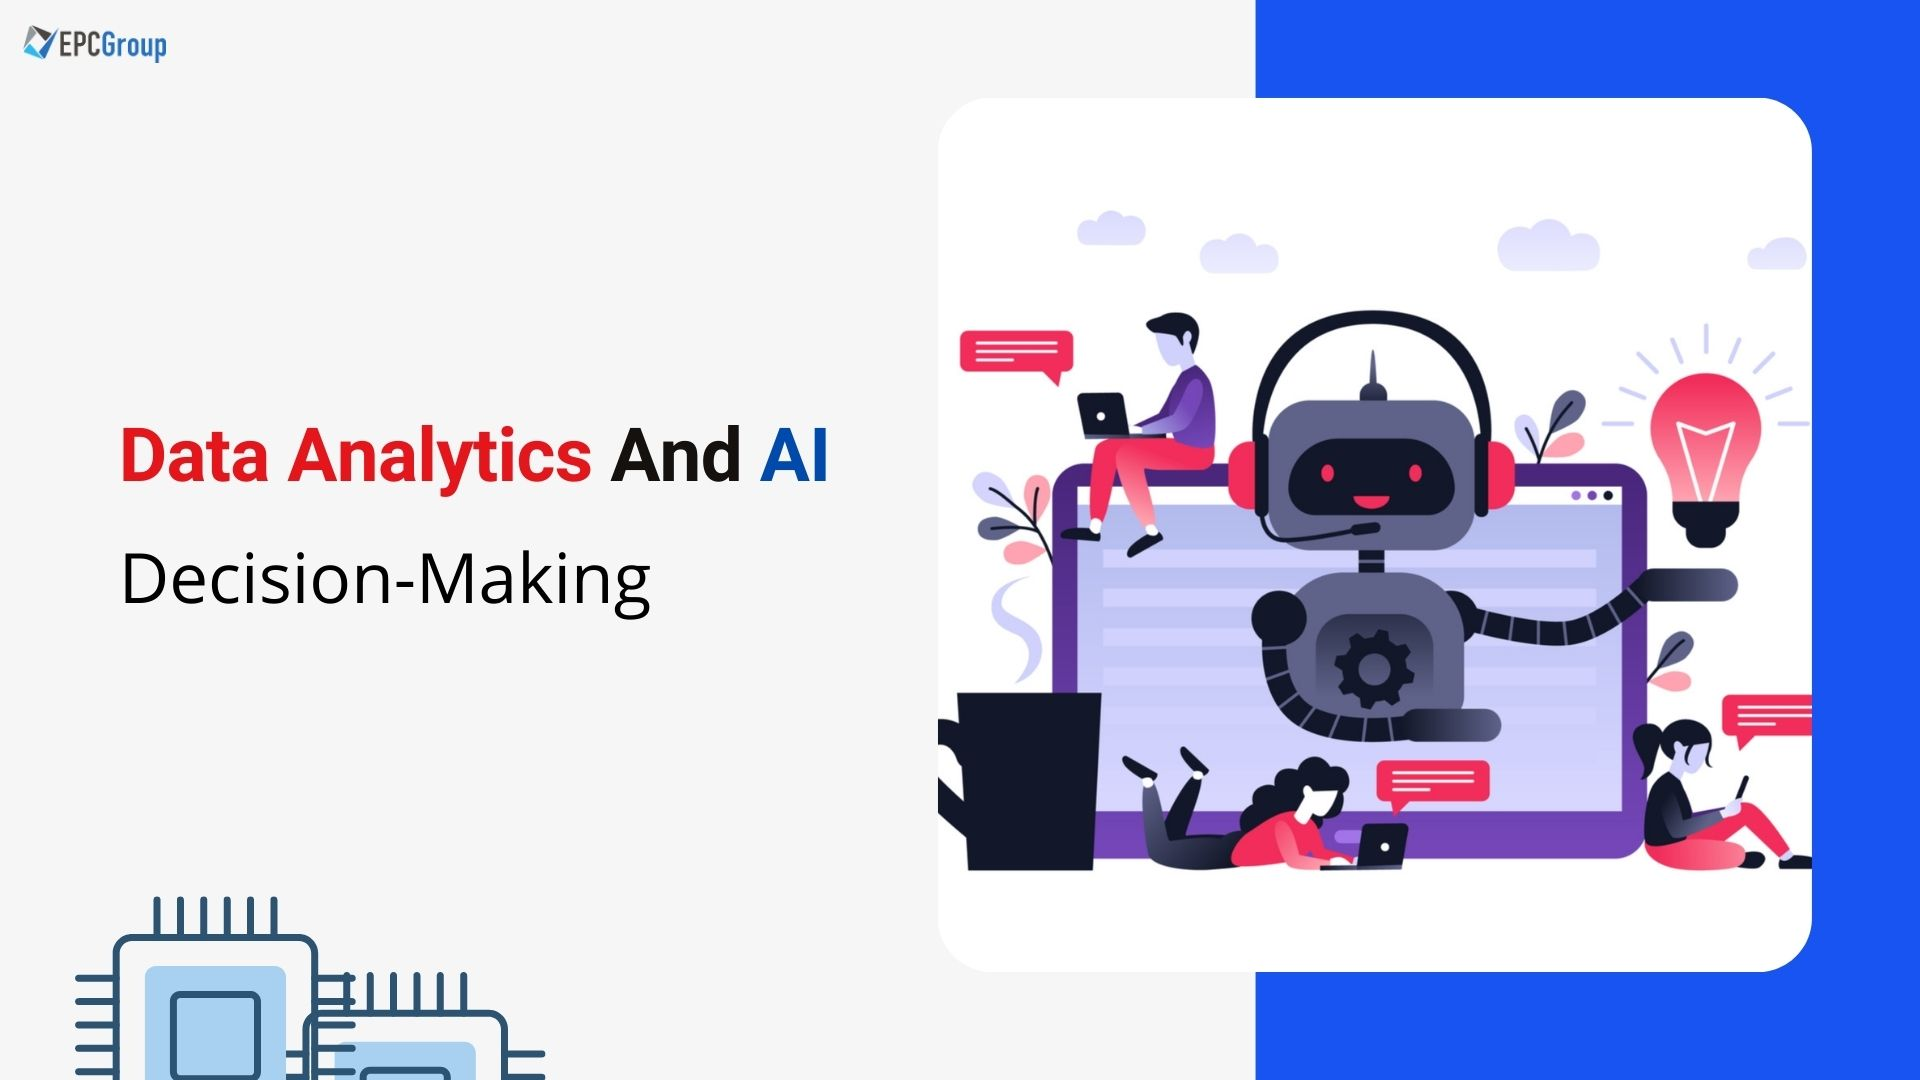 Data Analytics And AI in Decision-Making - thumb image